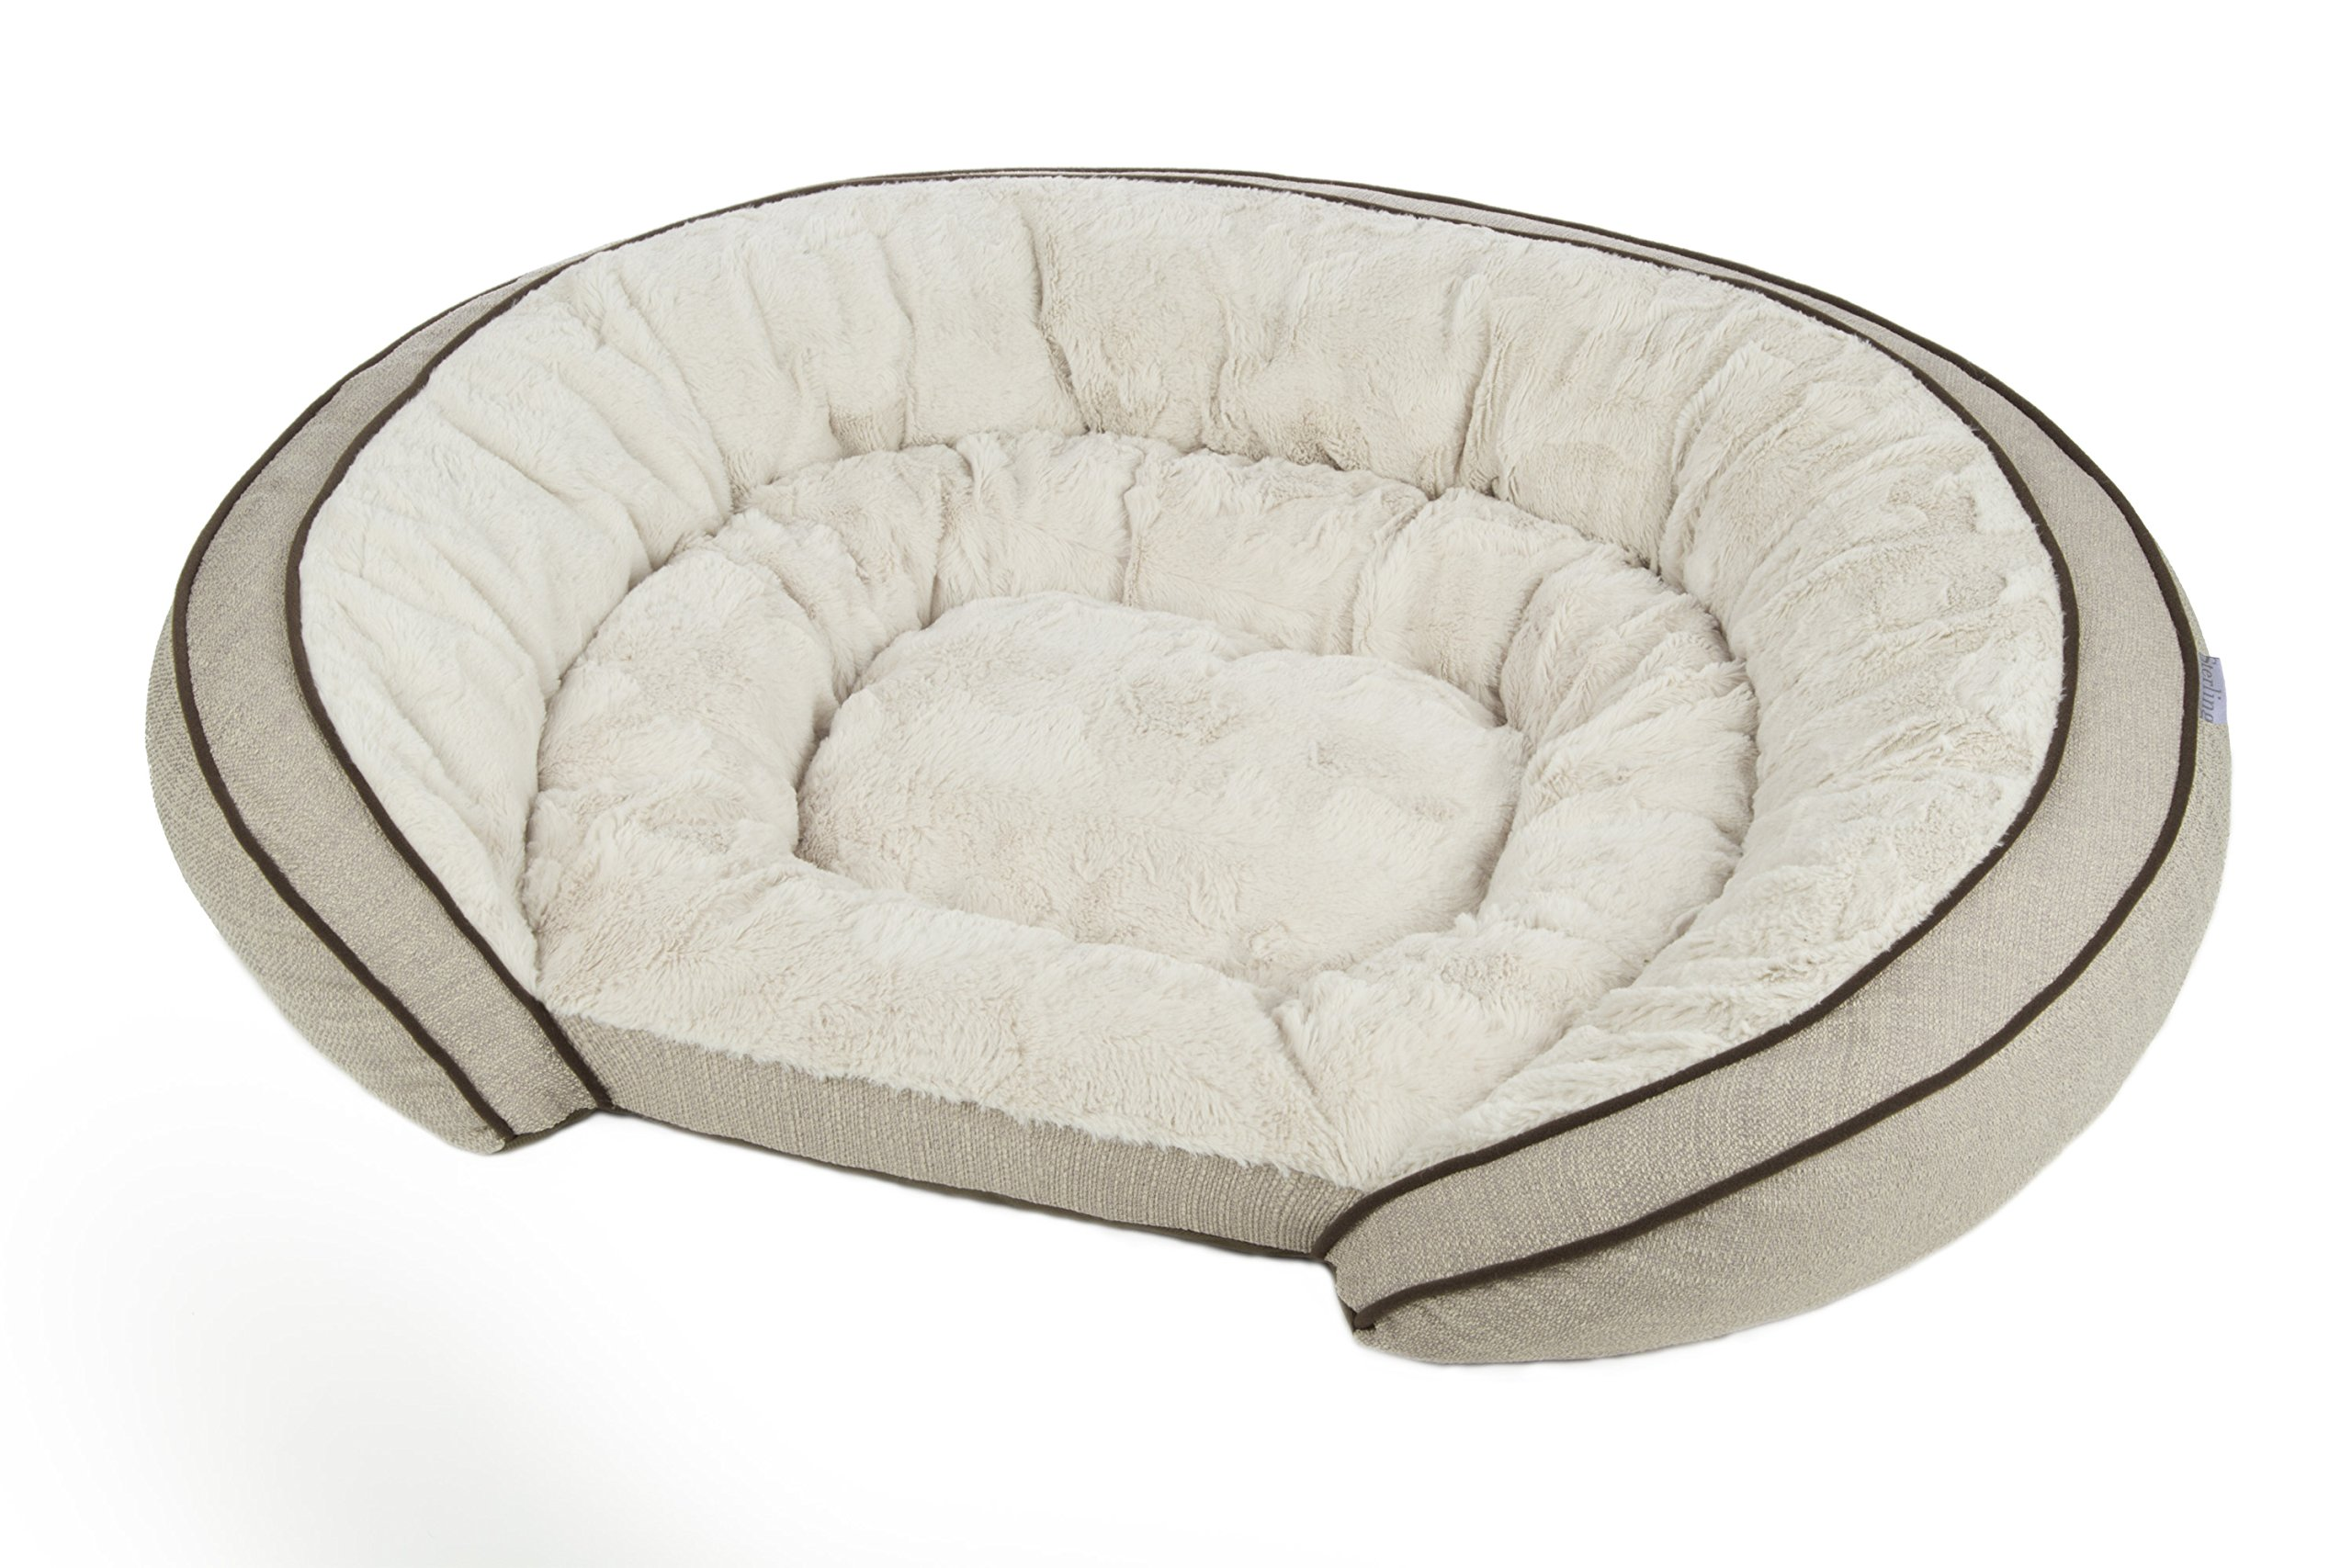 Sterling Premium Cooling Gel Memory Foam Pet Bed, Plush with Woven Linen, Beige by Sterling